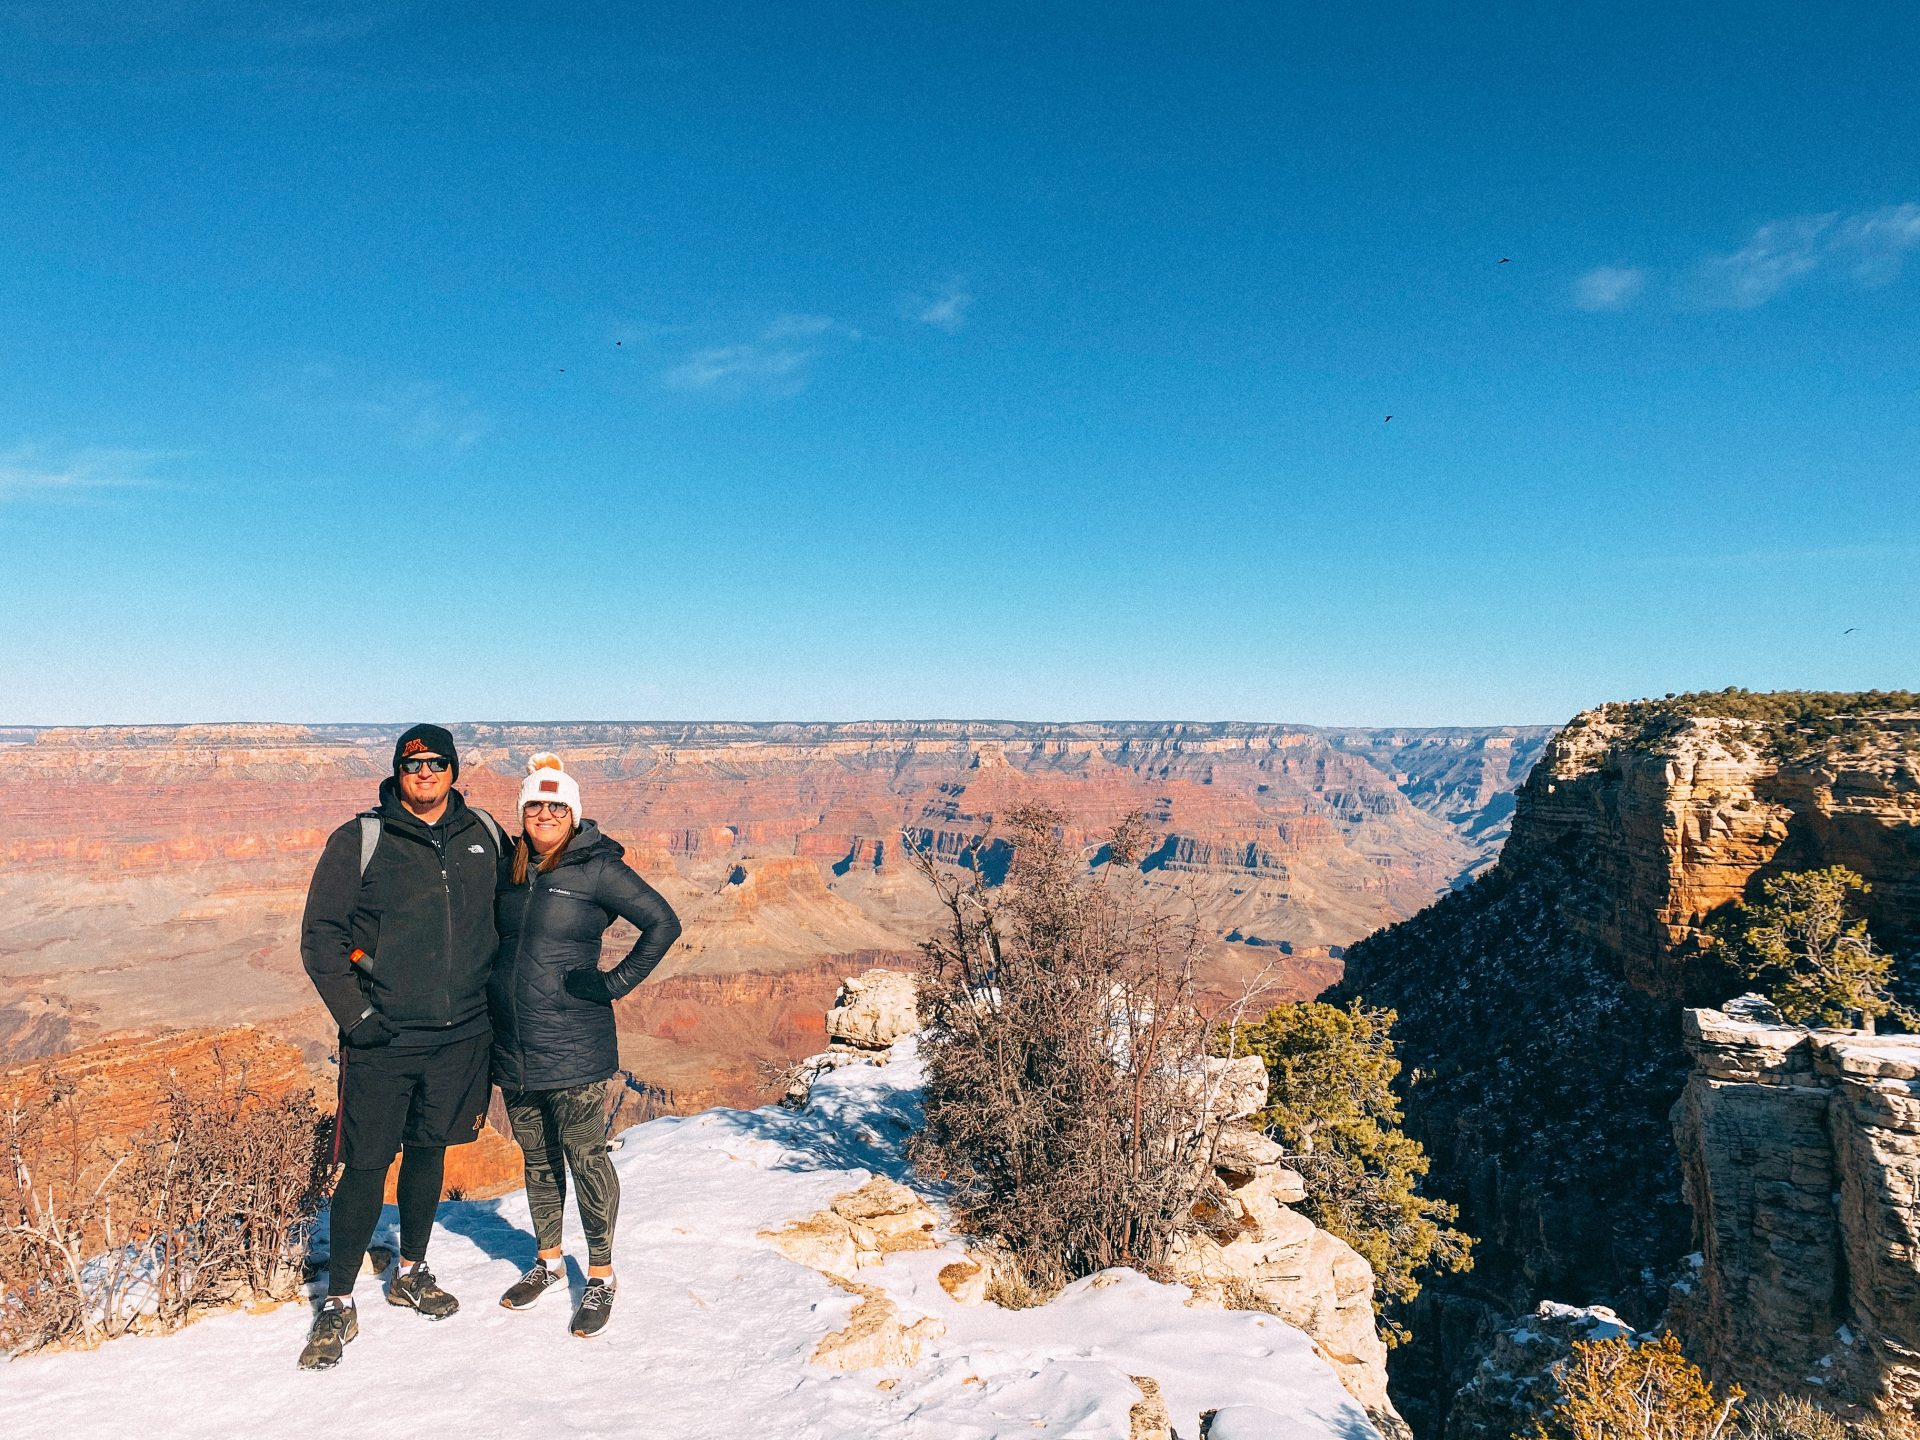 Man and woman smiling at the camera with the Grand Canyon, some shrubbery and snow in the frame.